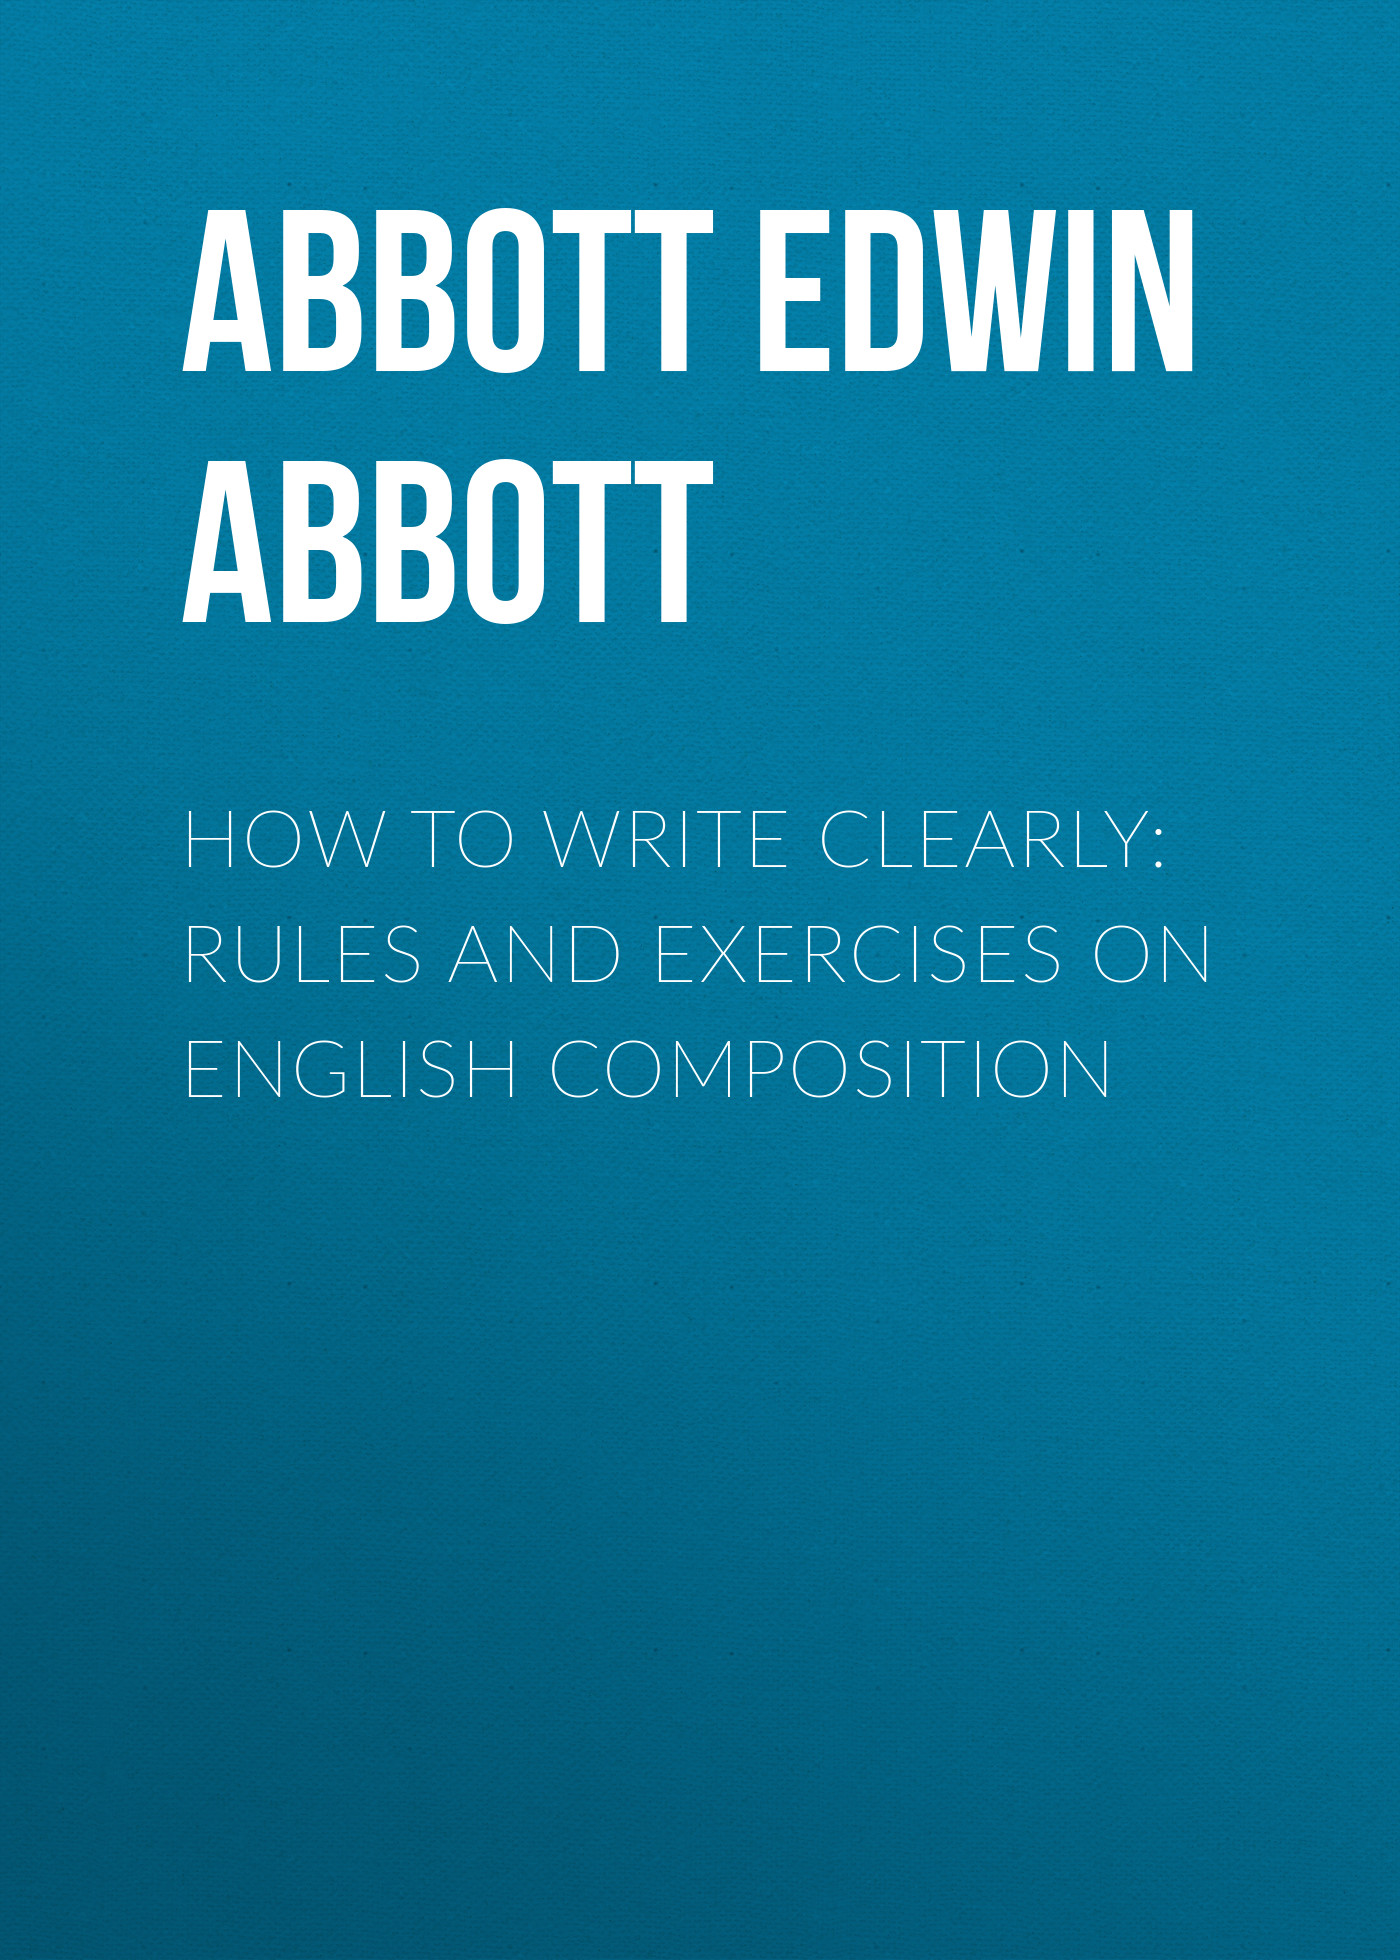 Abbott Edwin Abbott How to Write Clearly: Rules and Exercises on English Composition цена